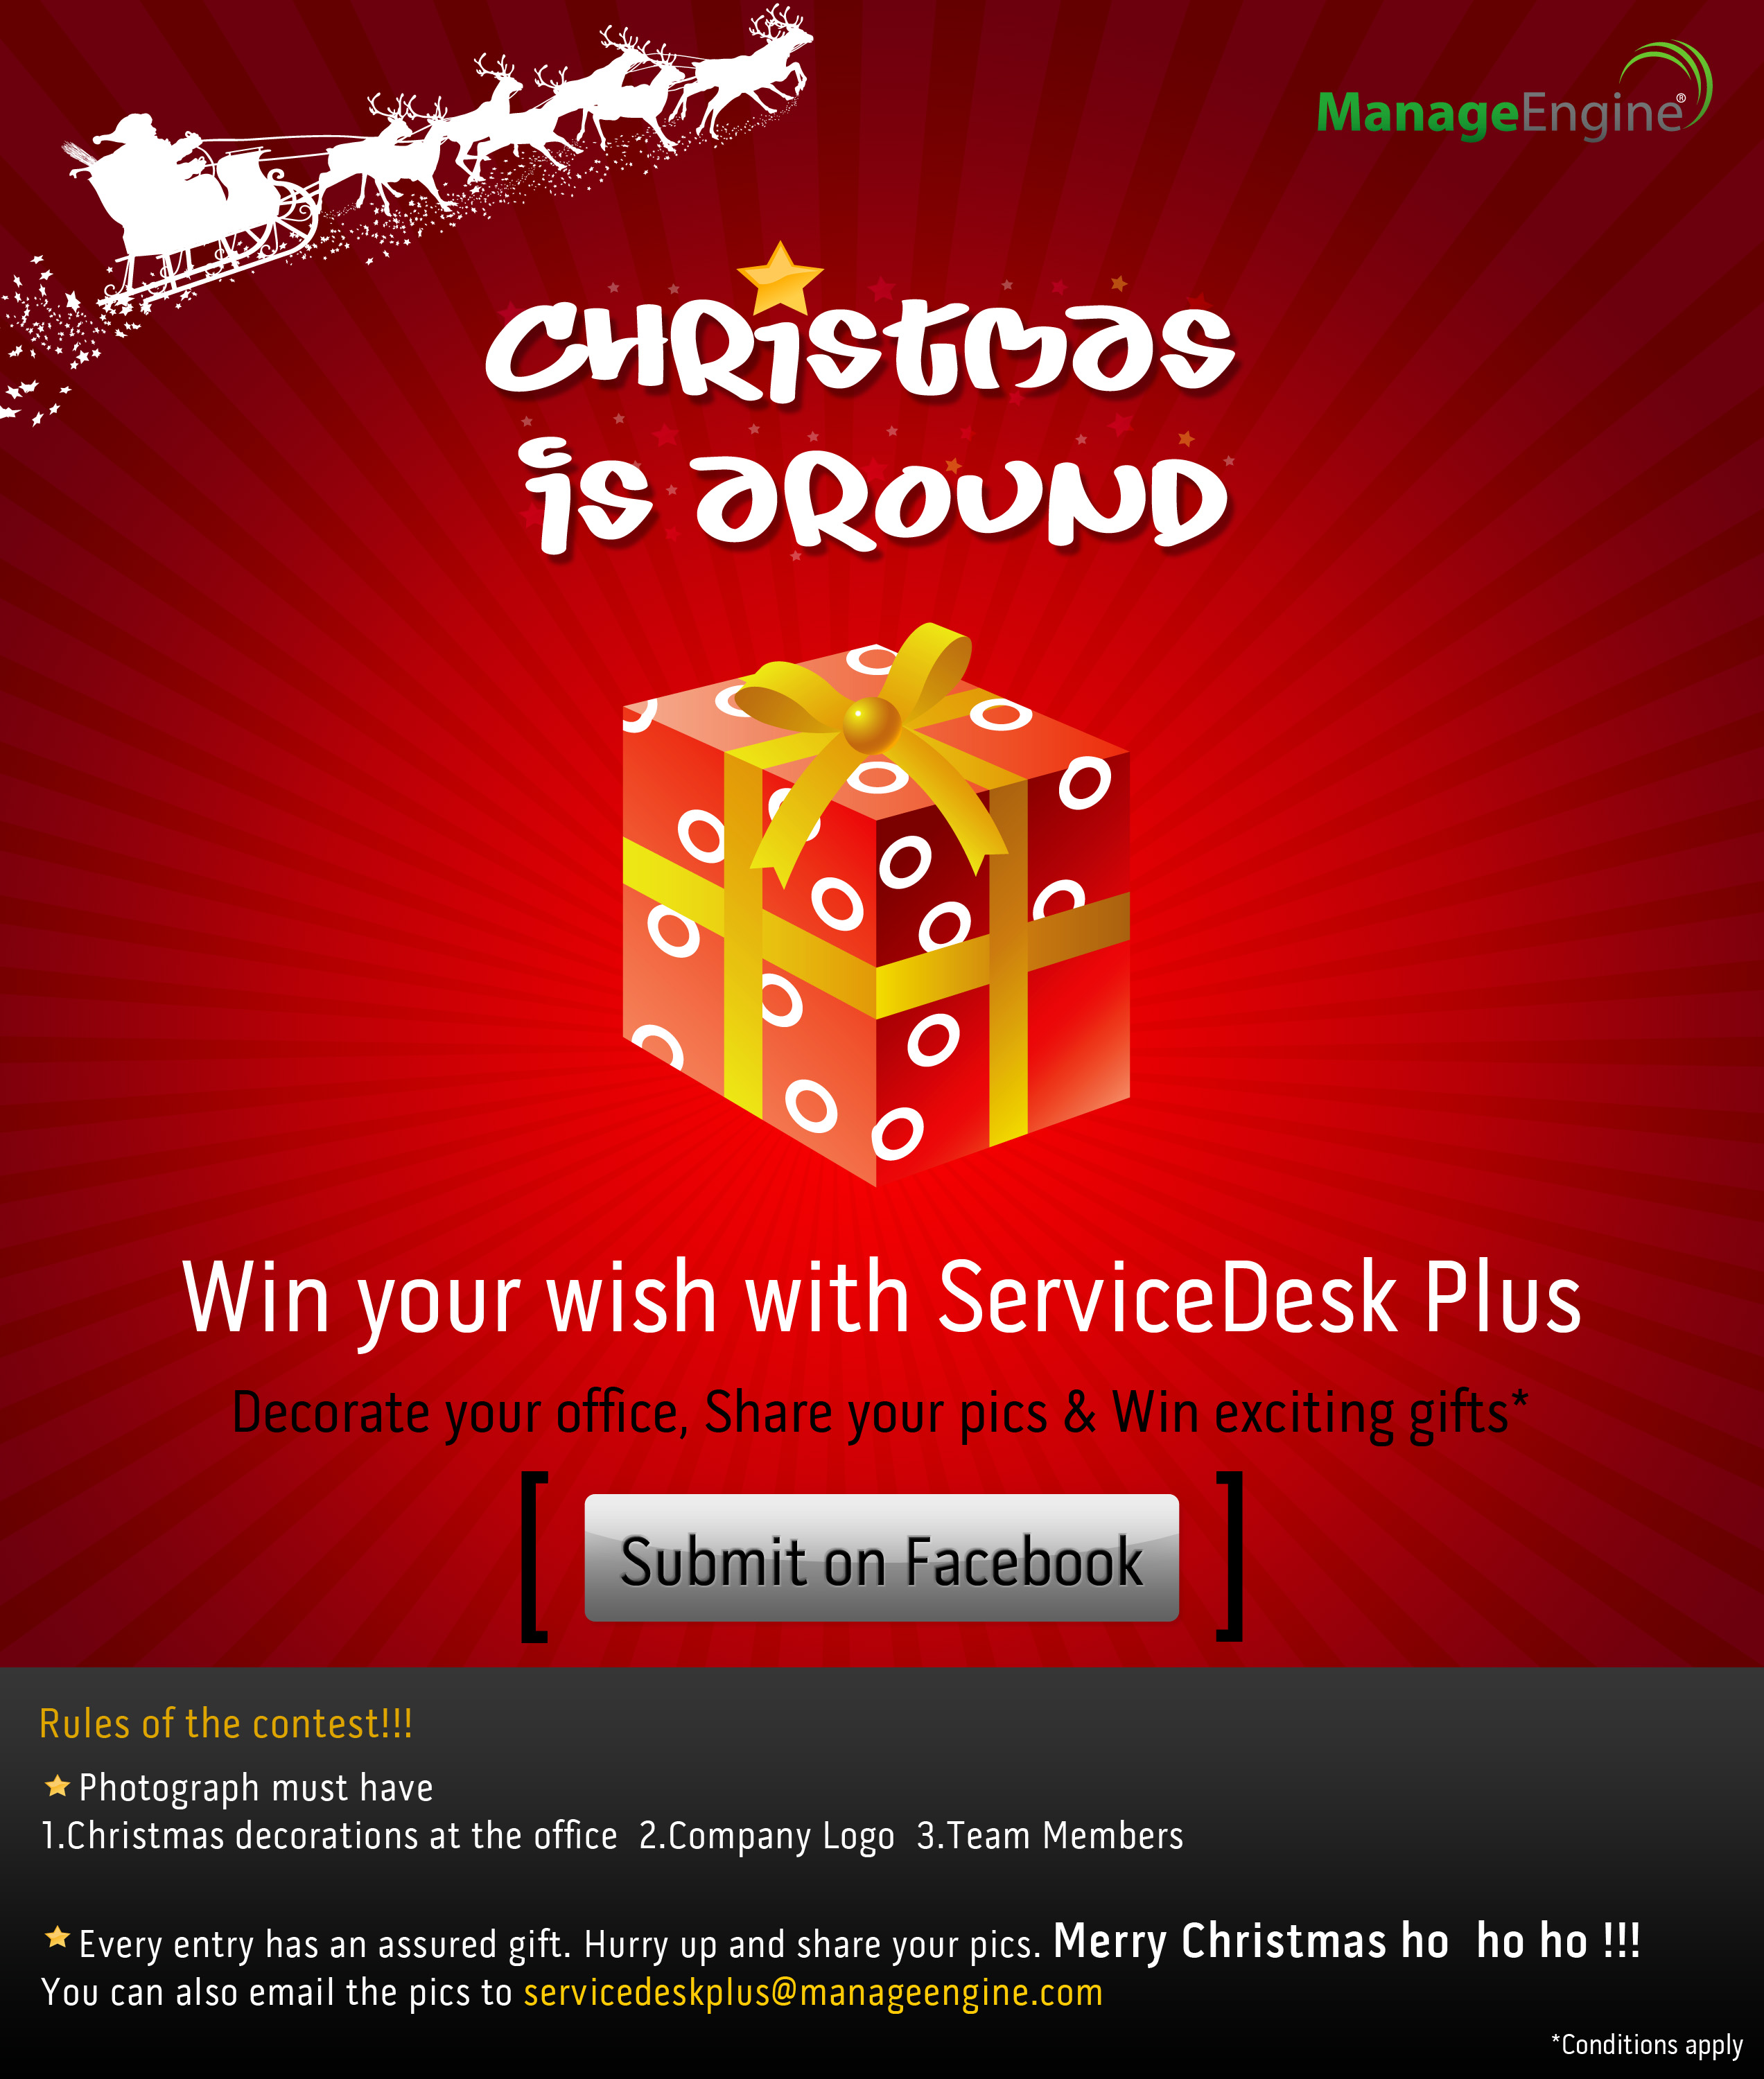 Decorate your office this christmas and win exciting gifts